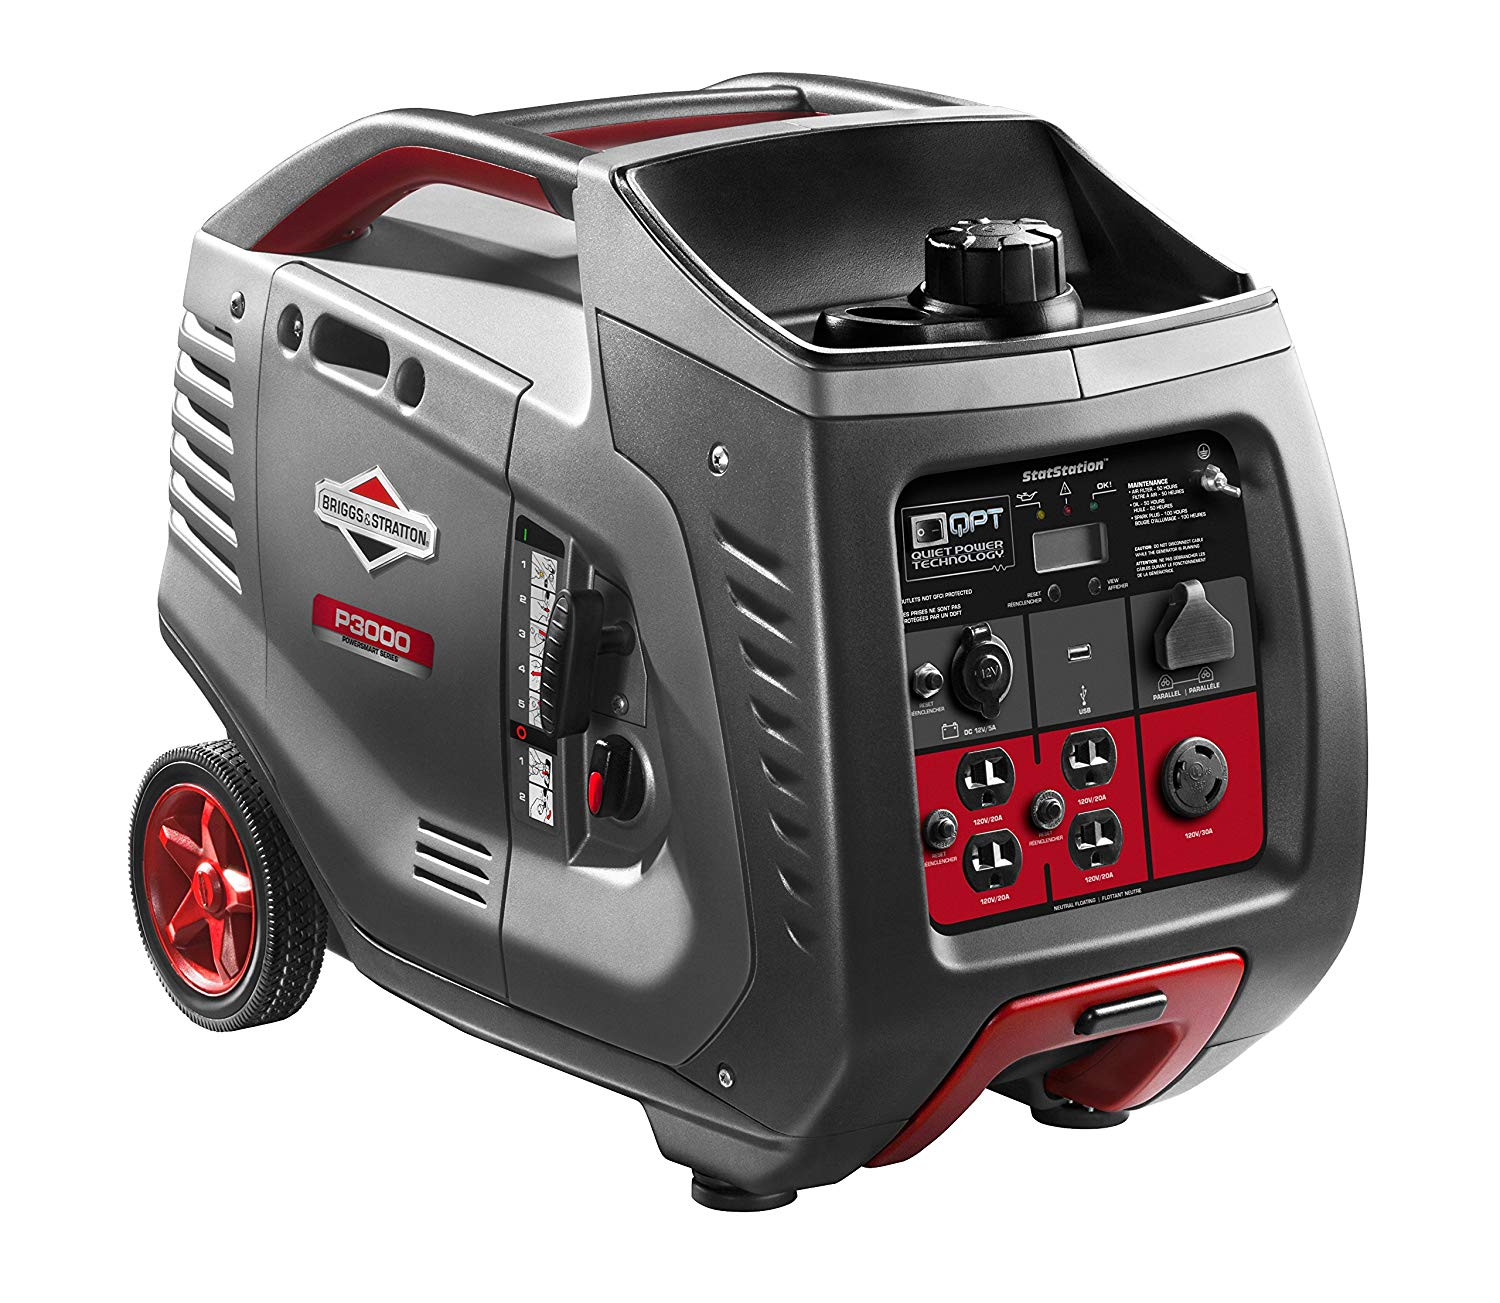 briggs & stratton 30545 p3000 powersmart series portable 3000